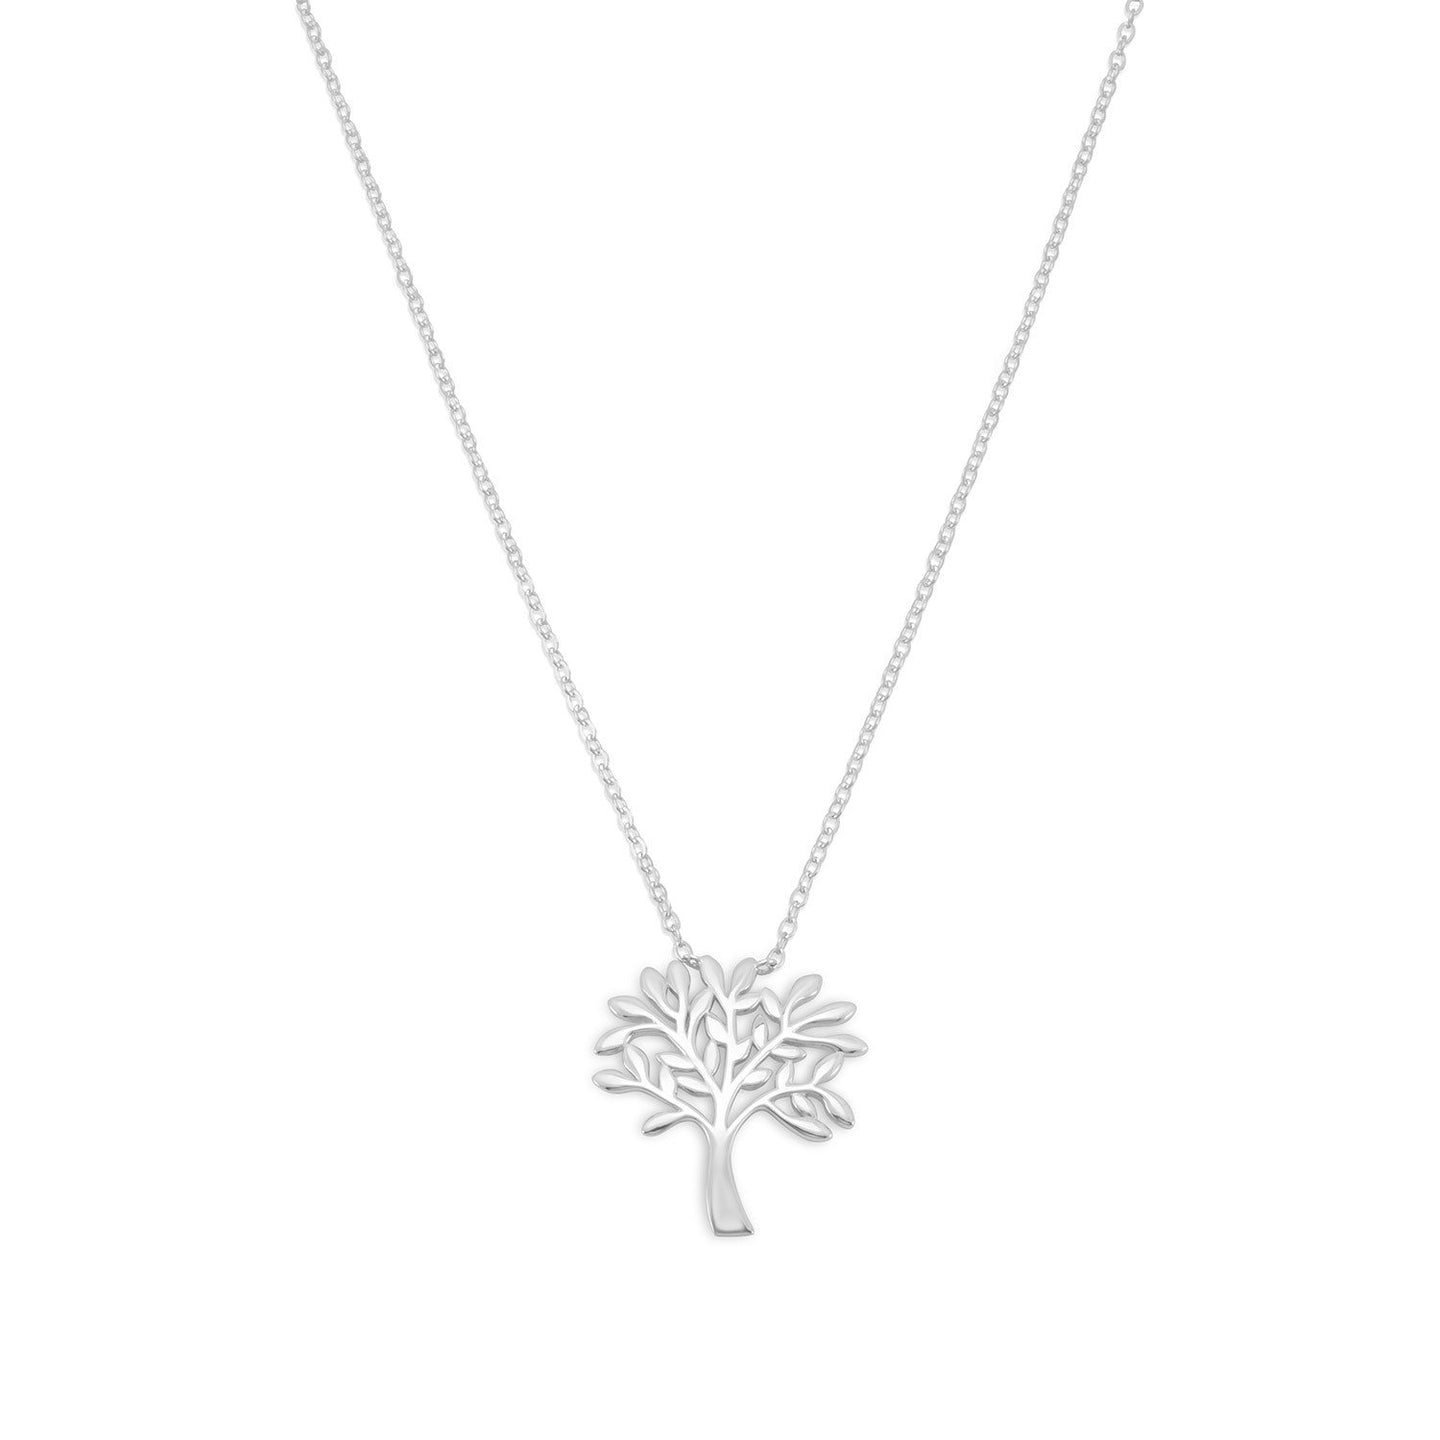 Rhodium Plated Tree Necklace - the-southern-magnolia-too